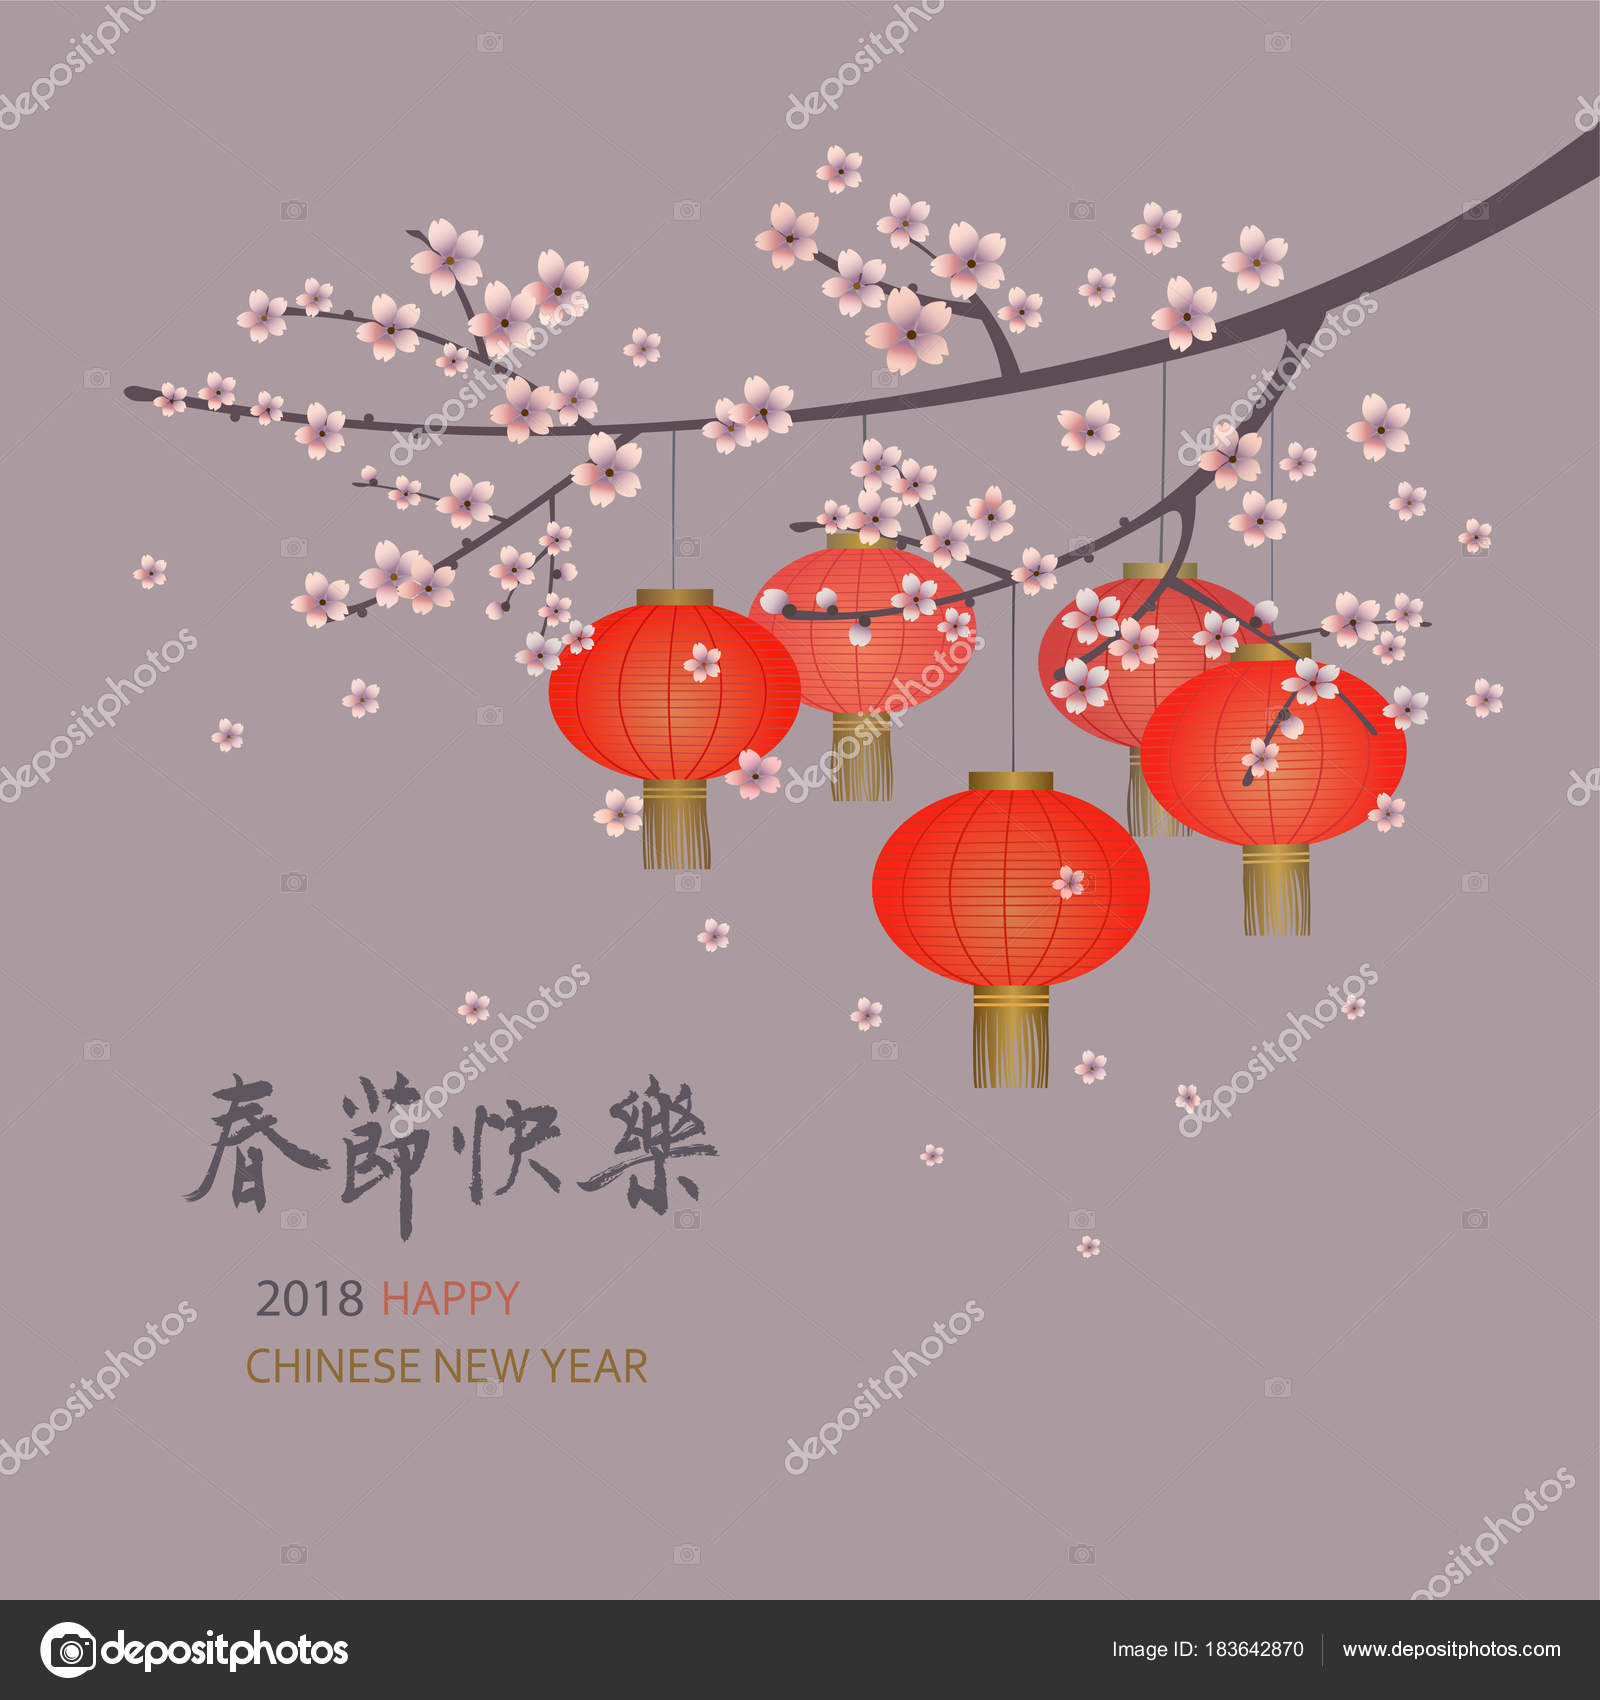 2018 Chinese New Year Greeting Card With Sakura Branches And Red